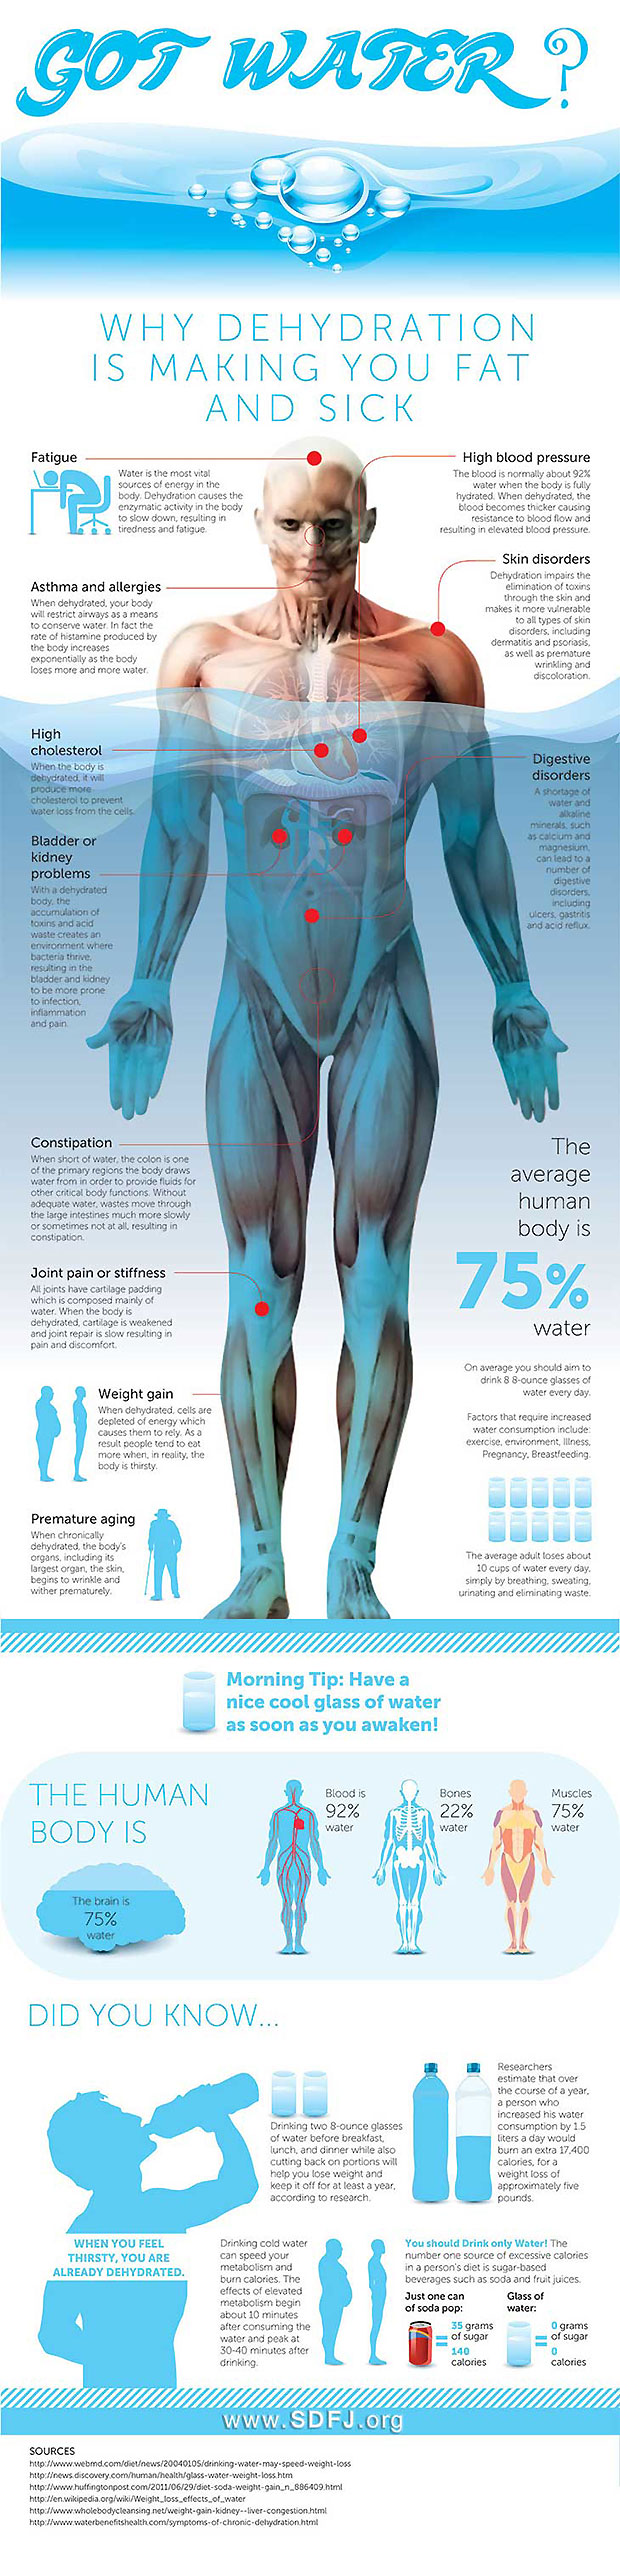 What-you-need-to-know-about-dehydration